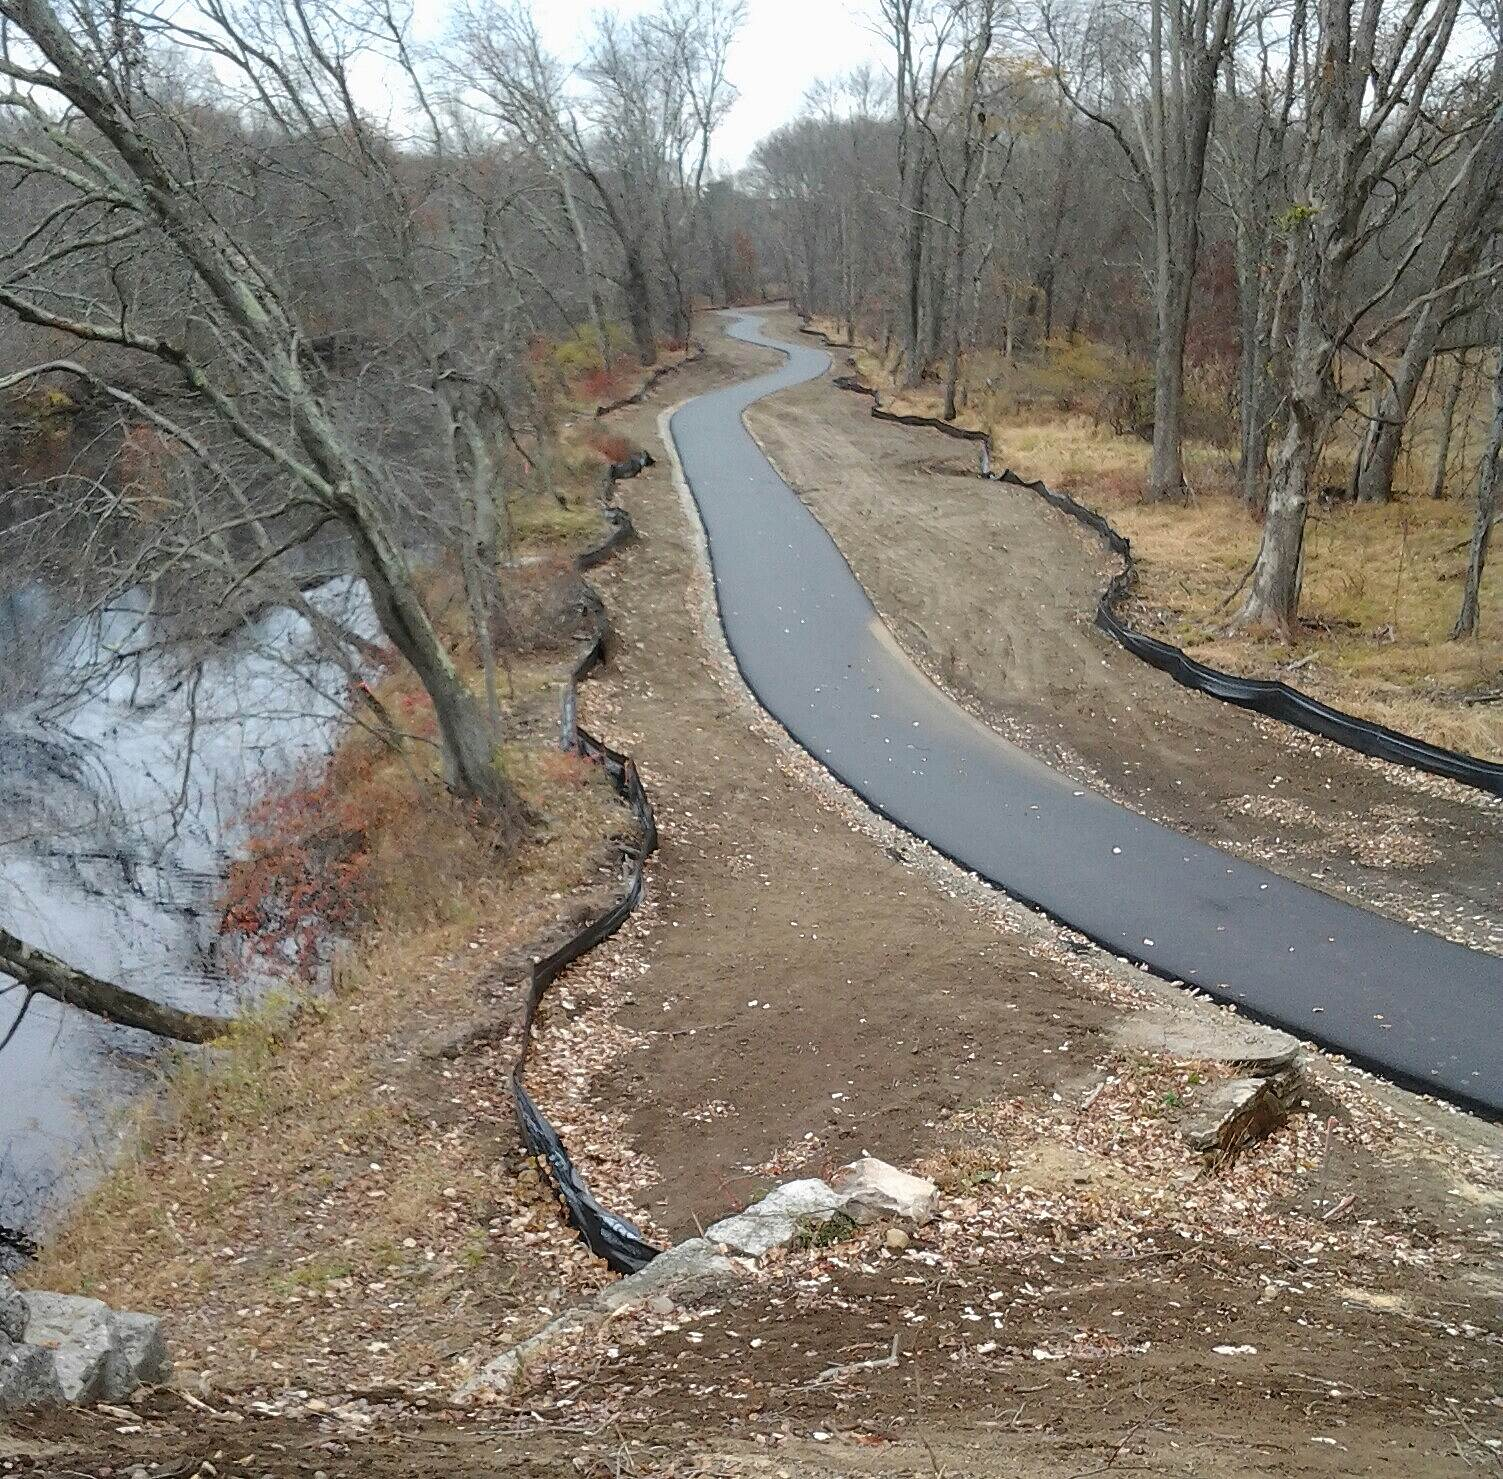 Air Line State Park Trail Airline/Hop River Connector This is the new connecting trail for the Airline and Hop River Trails.  It follows the Willimantic River from Bridge Street to Rt 66 on the Columbia/Willimantic town line.  It is beautifully paved!!